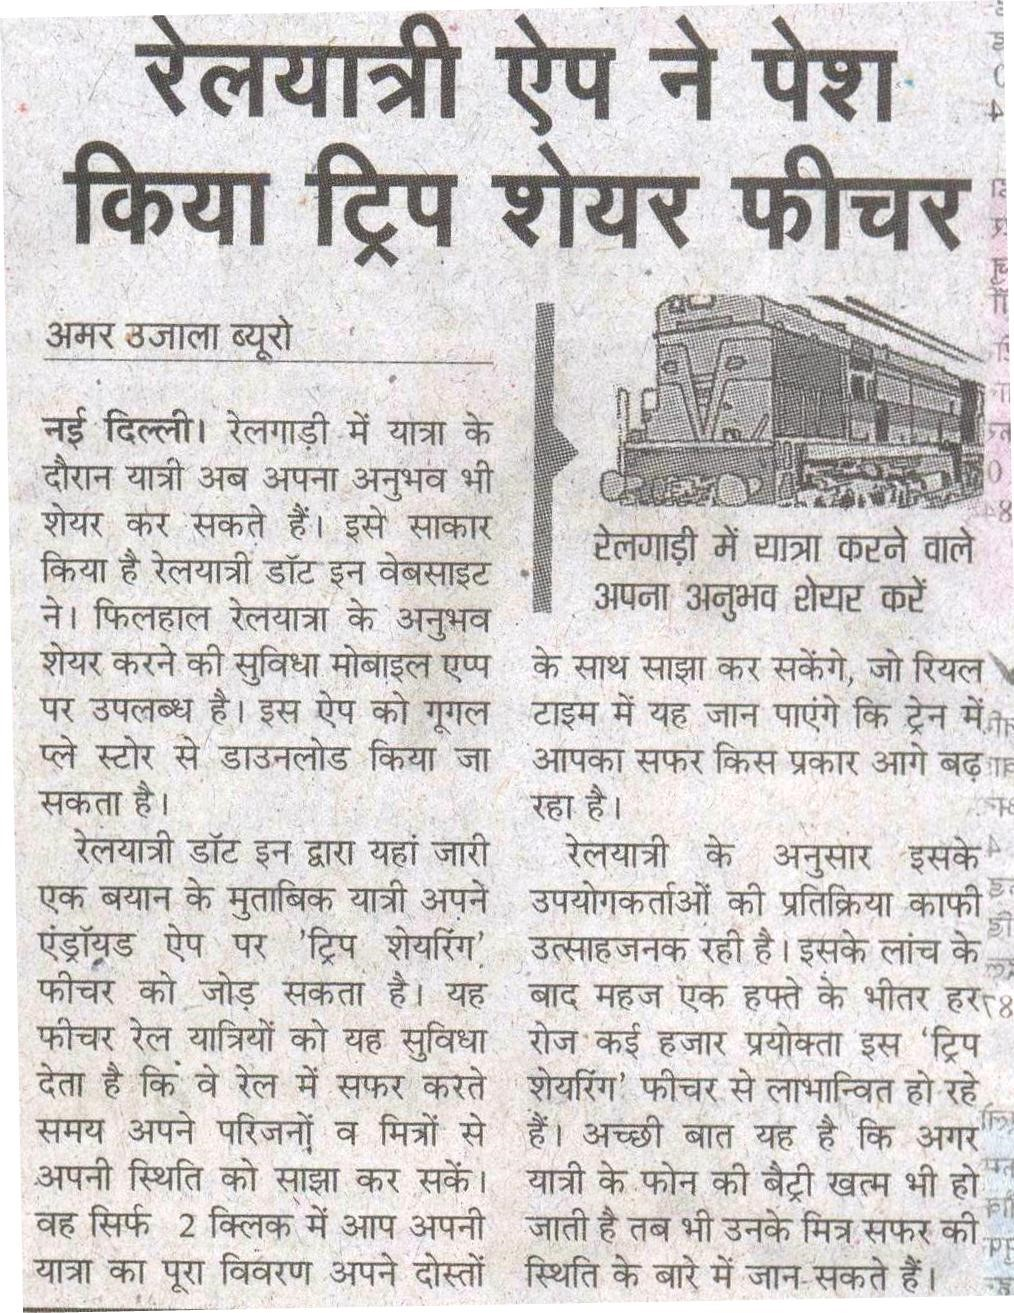 Amar ujala 28th may 2015 1524211346